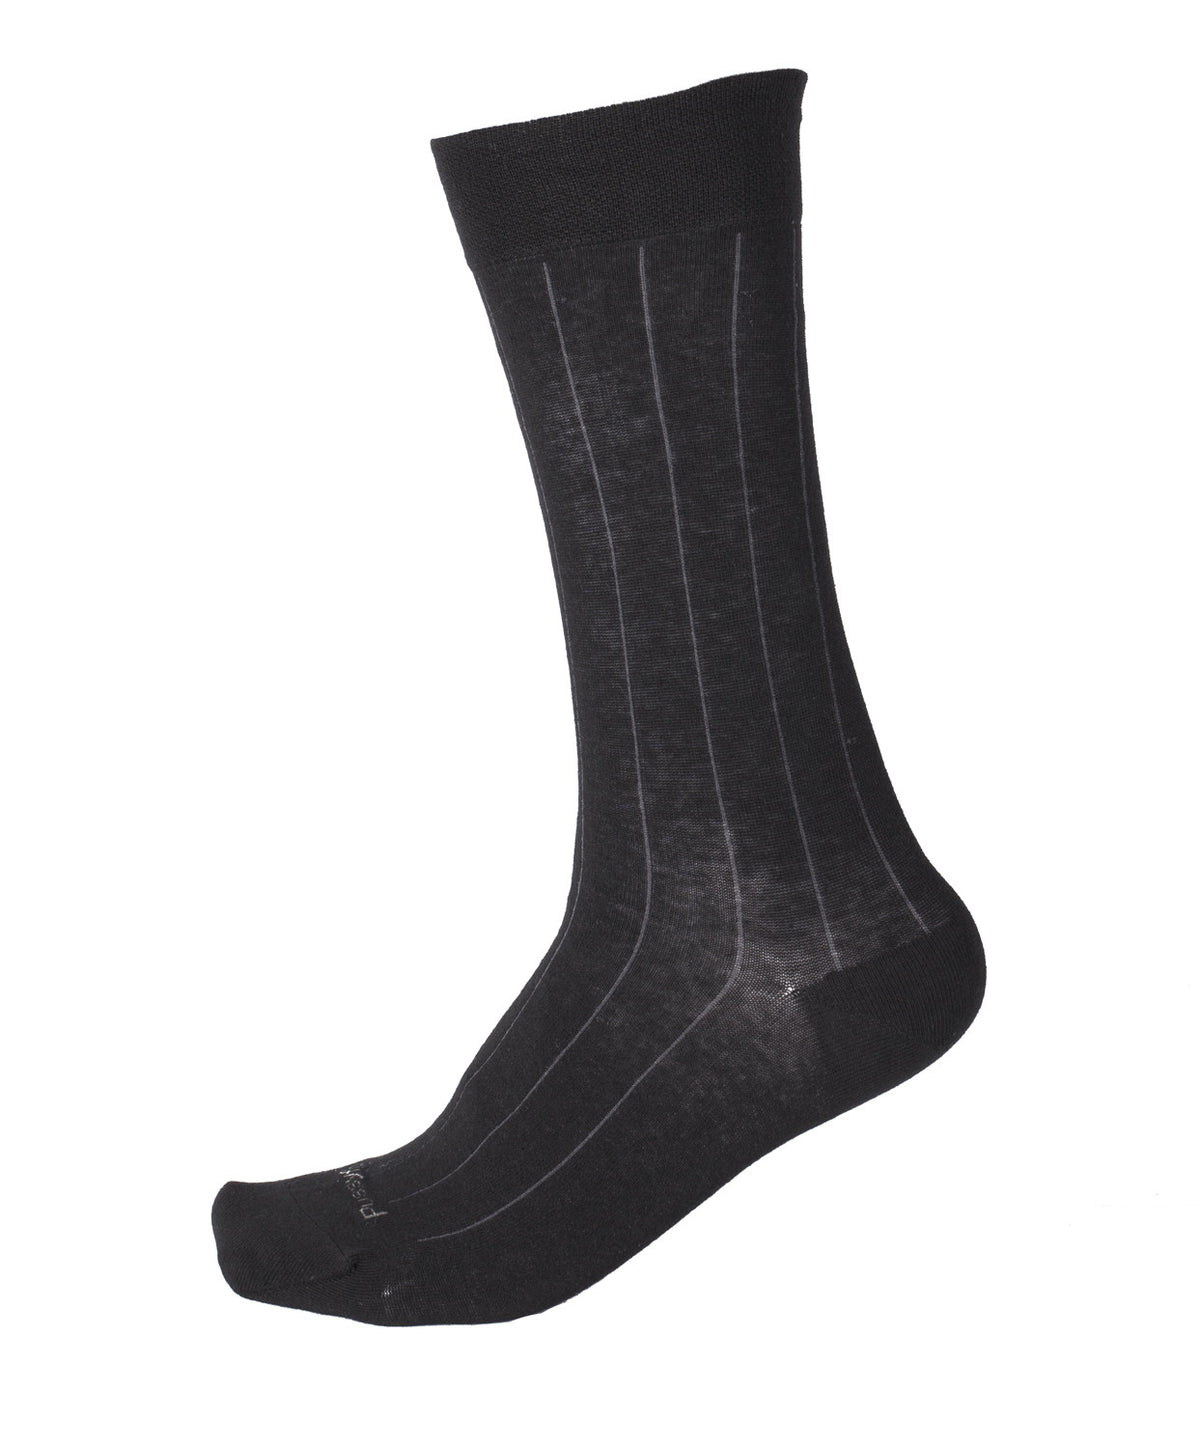 Pussyfoot Non Tight Broad Rib Health Socks - Black